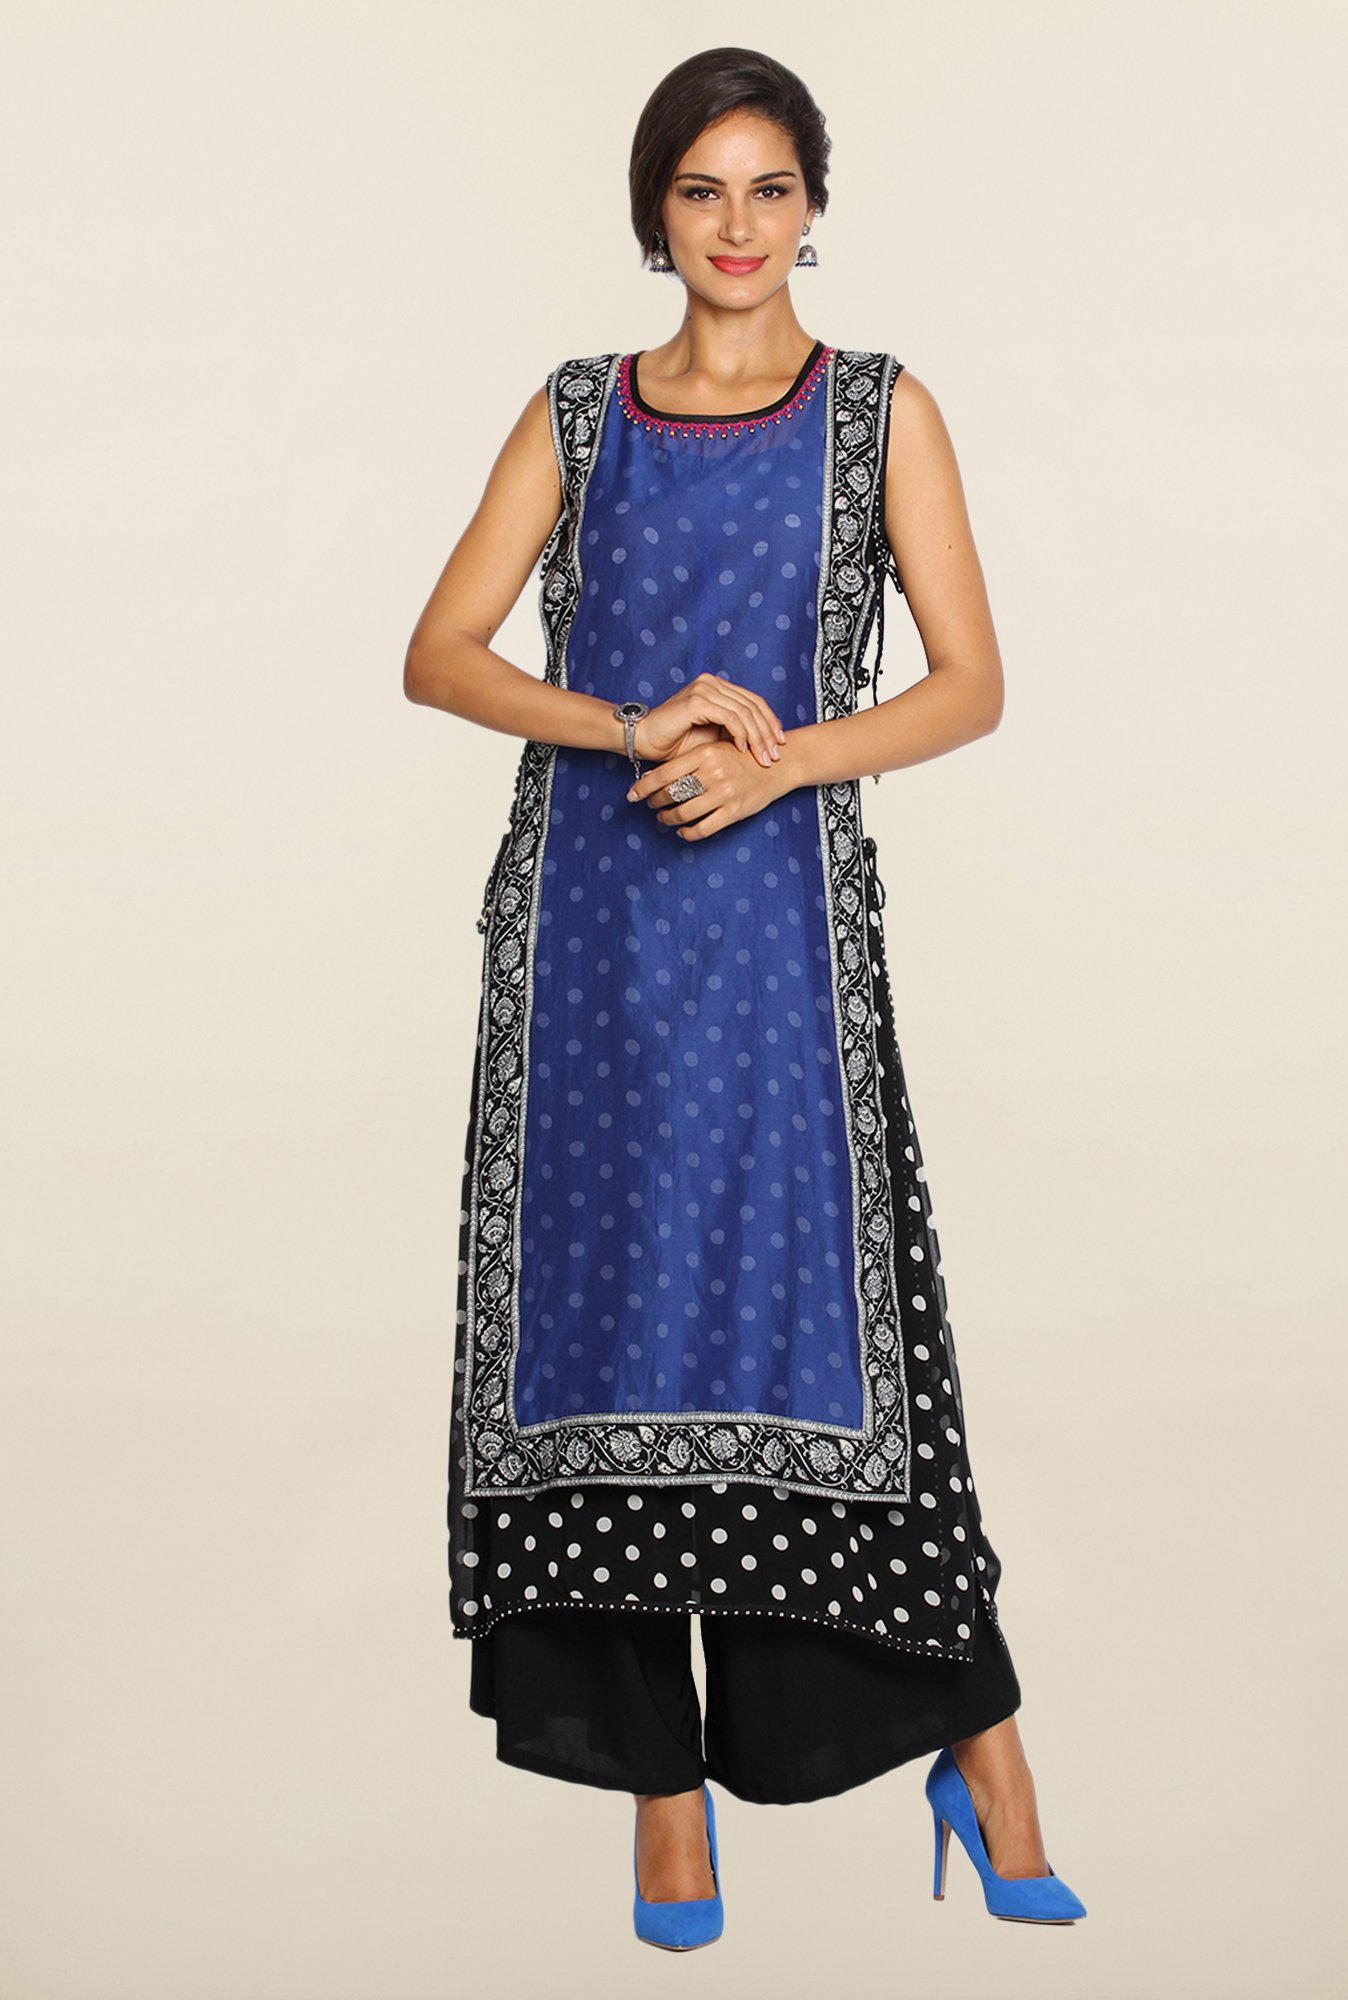 Soch Blue & Black Chanderi Silk Kurta Suit Set